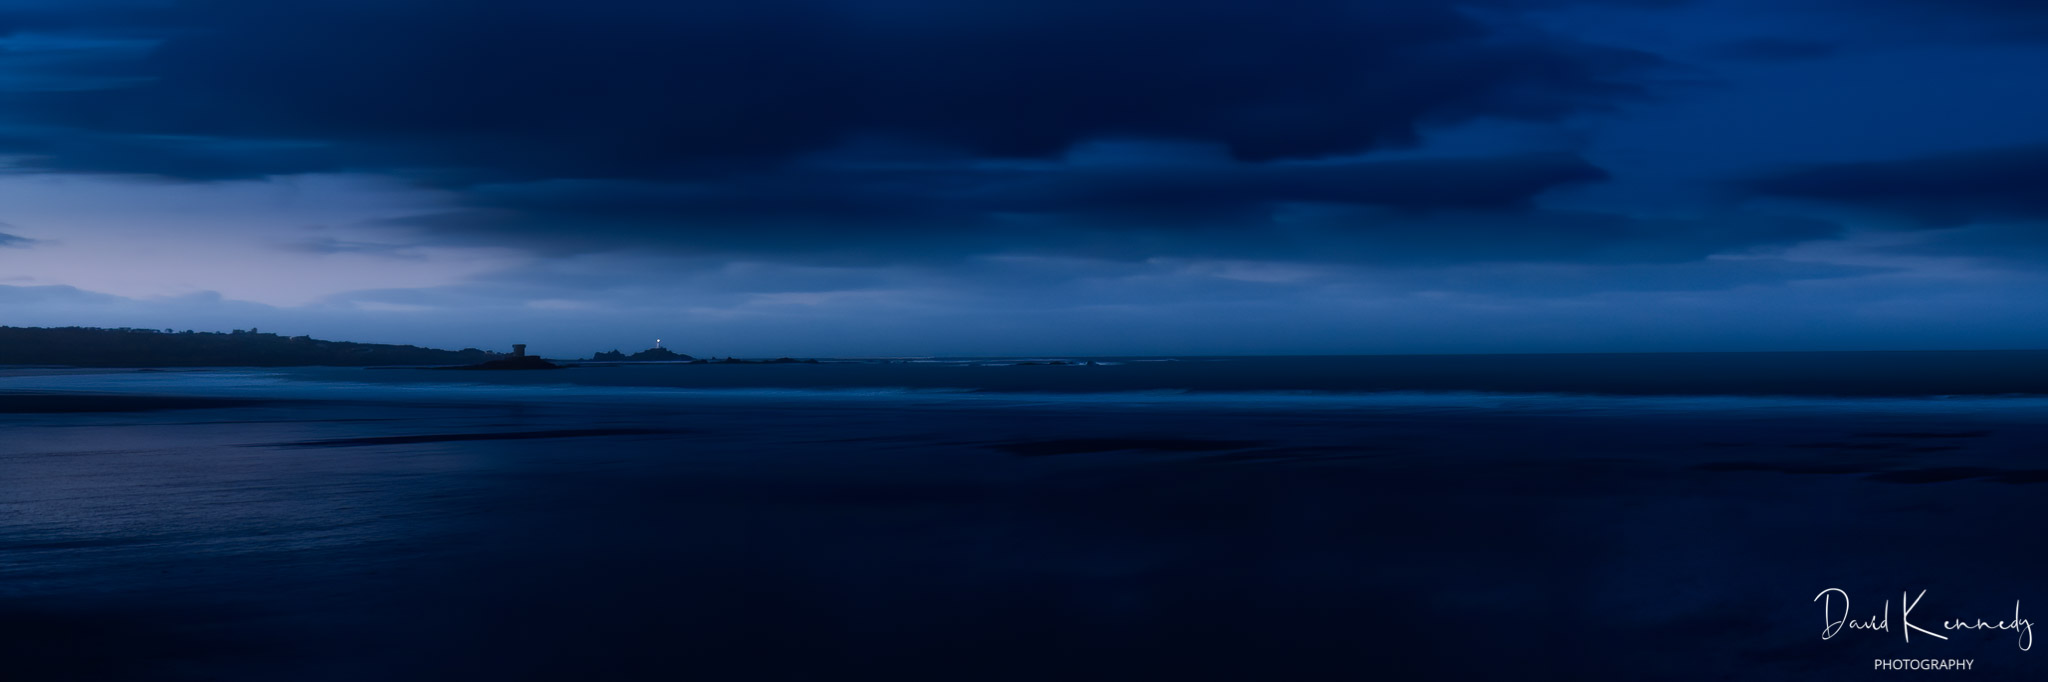 View over beach and sea in the blue hour with Lighthouse